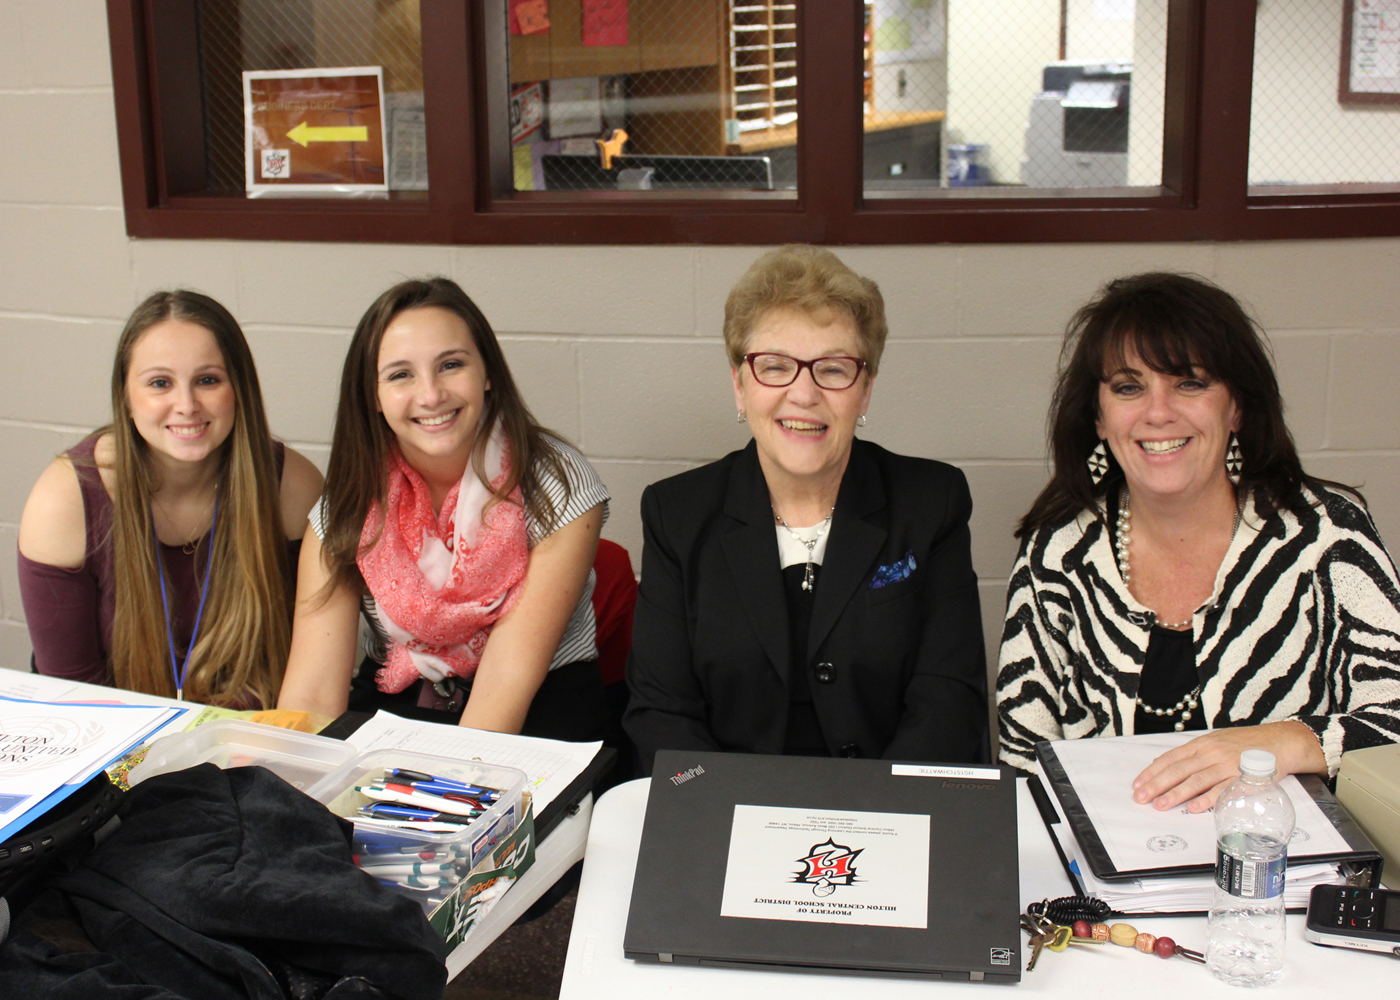 (L-r) Hilton junior Genna Maneti, and teachers Erin Moses, Annette Wattie and Sandra White registered students from over 30 school districts at this year's Model United Nations Conference at Hilton High School. Provided photo